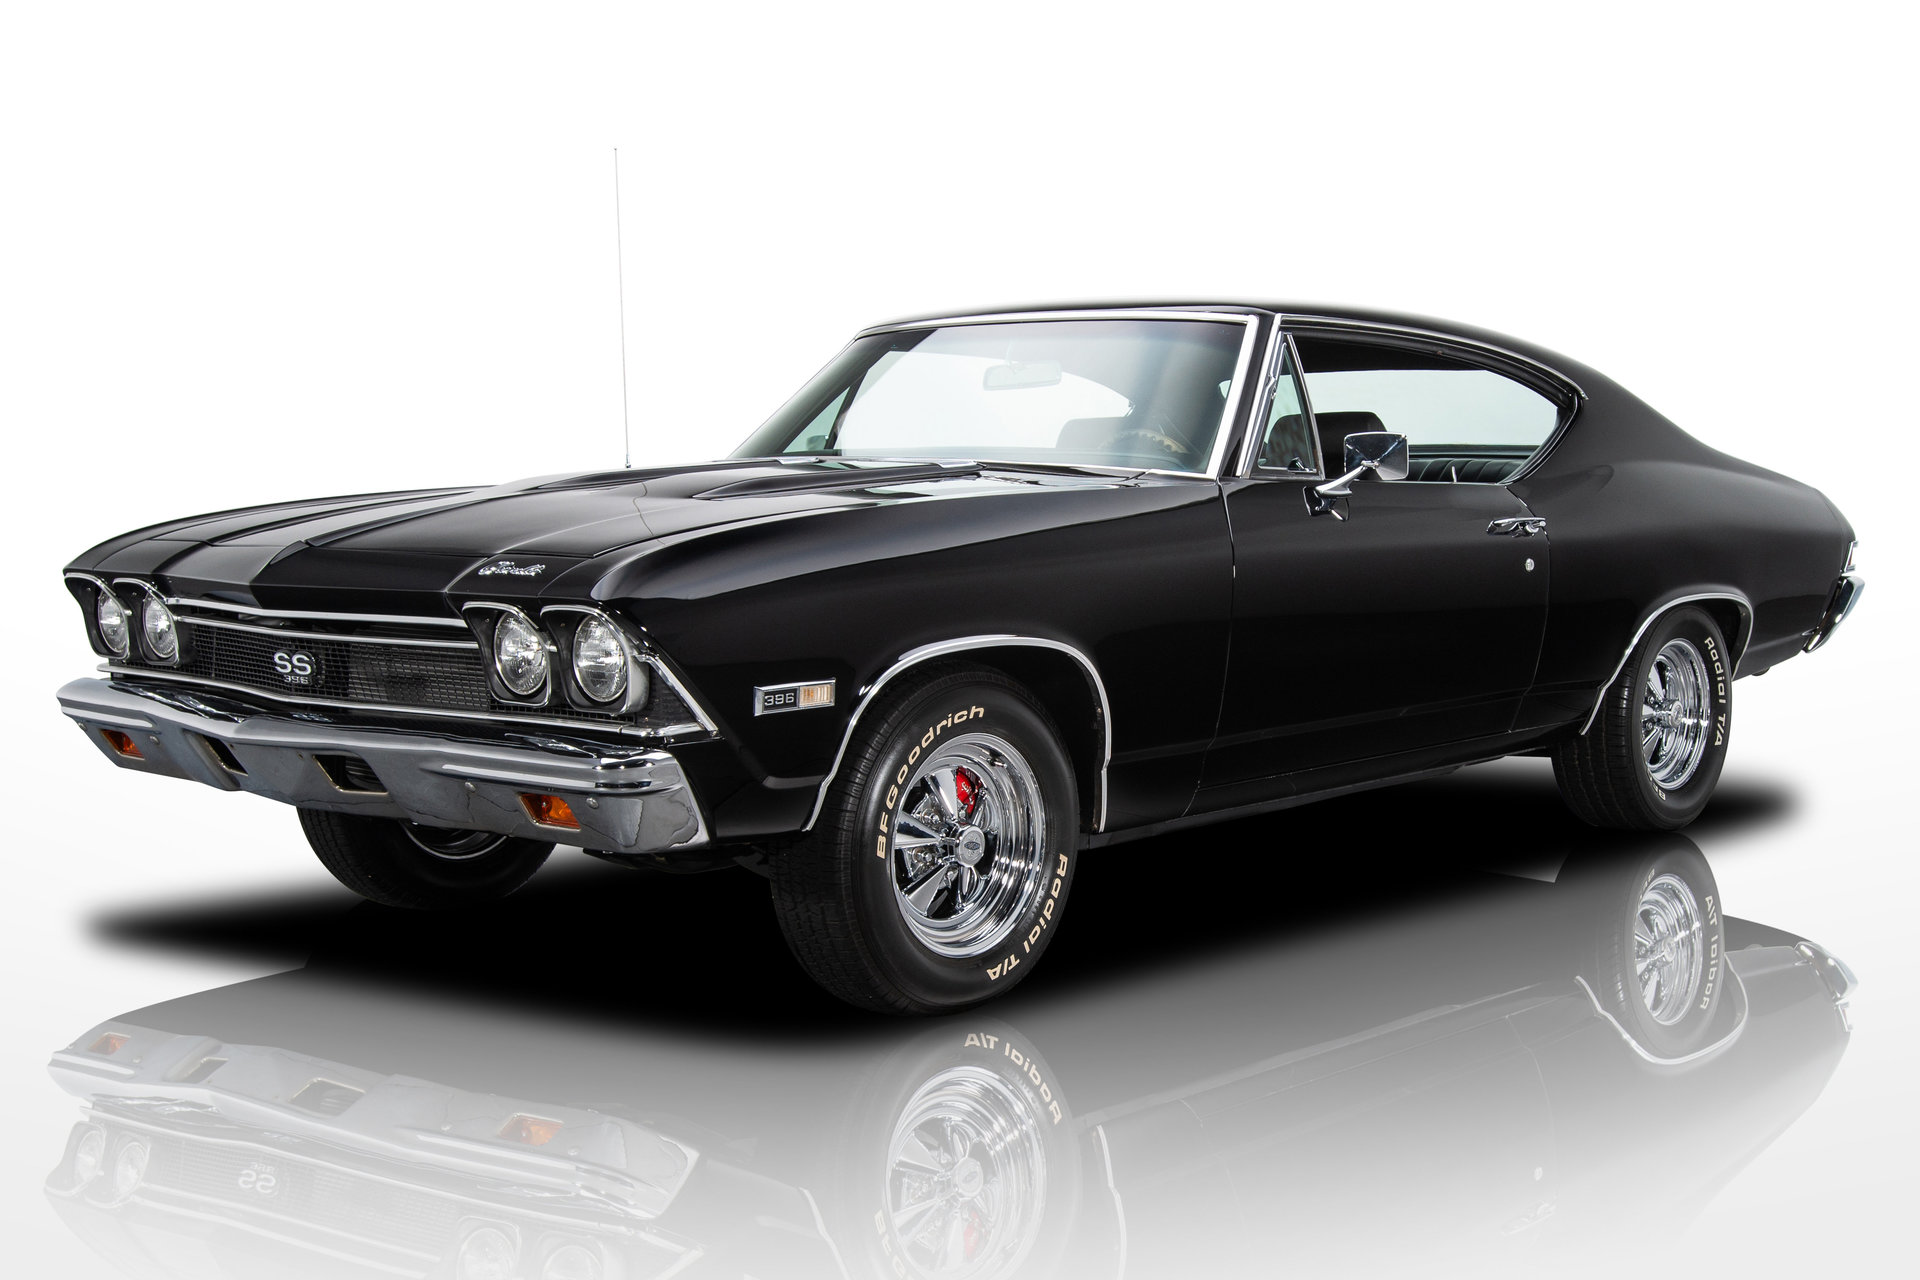 136318 1968 Chevrolet Chevelle Rk Motors Classic And Performance Chevy Blazer Lifted For Sale